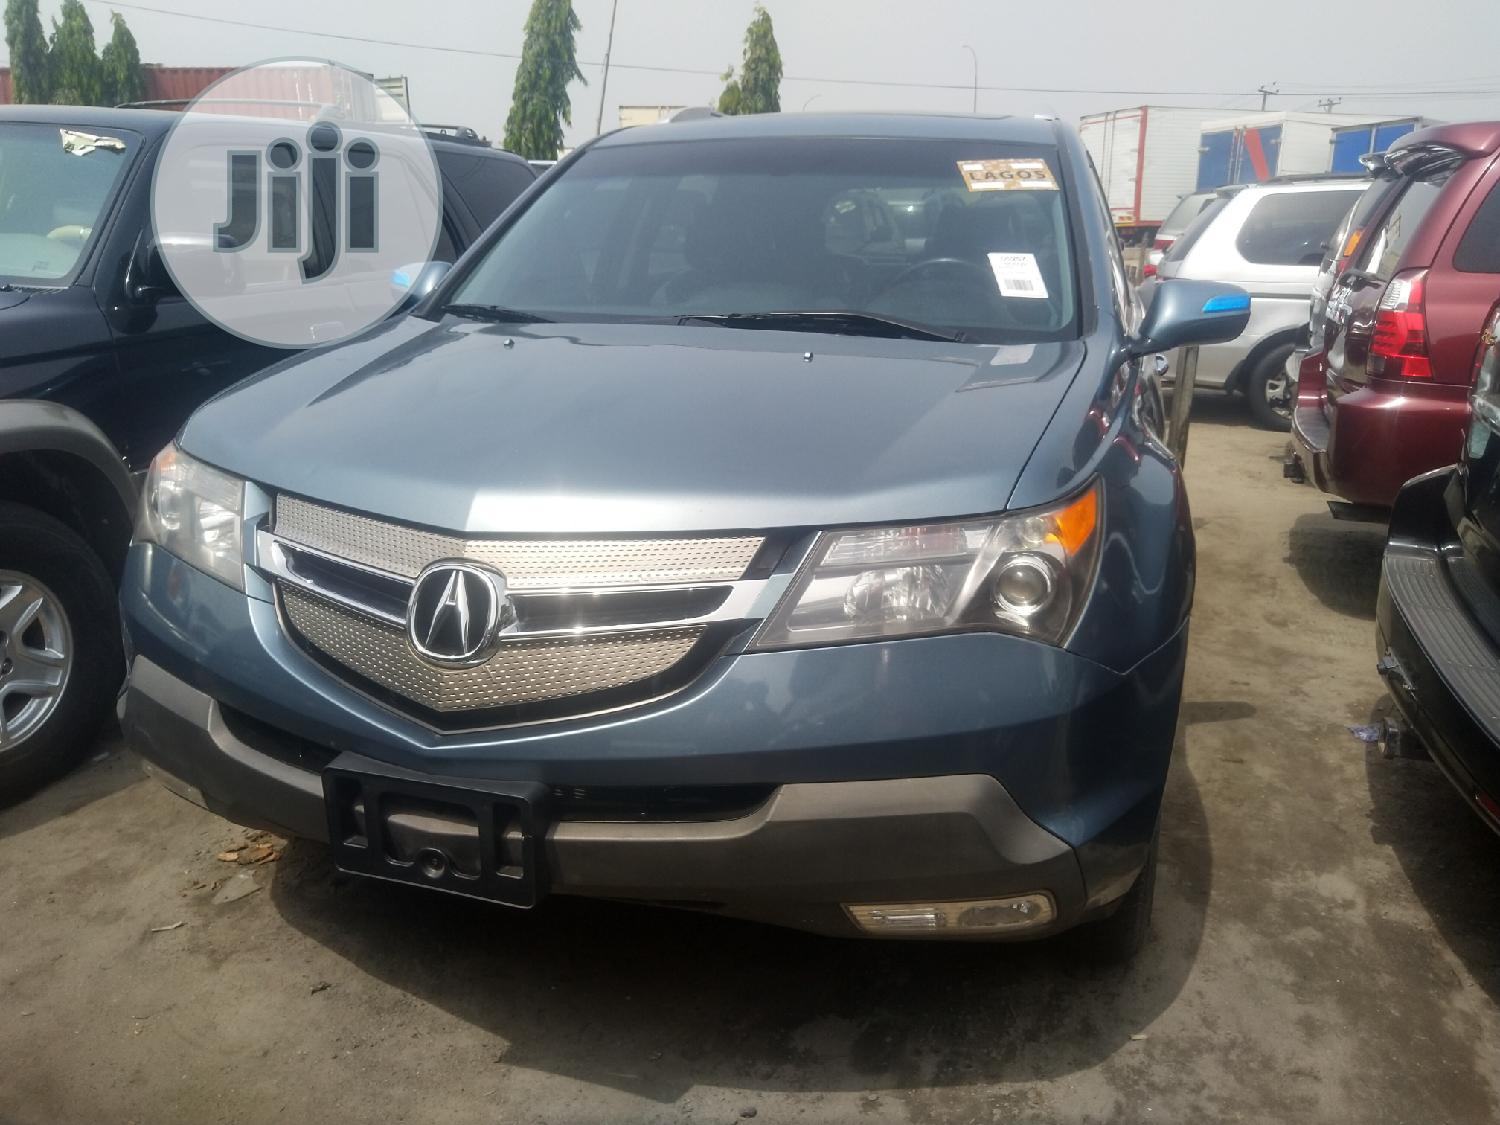 Acura Mdx 2009 Suv 4dr Awd 3 7 6cyl 5a Gray In Apapa Cars J And D Motors Jiji Ng